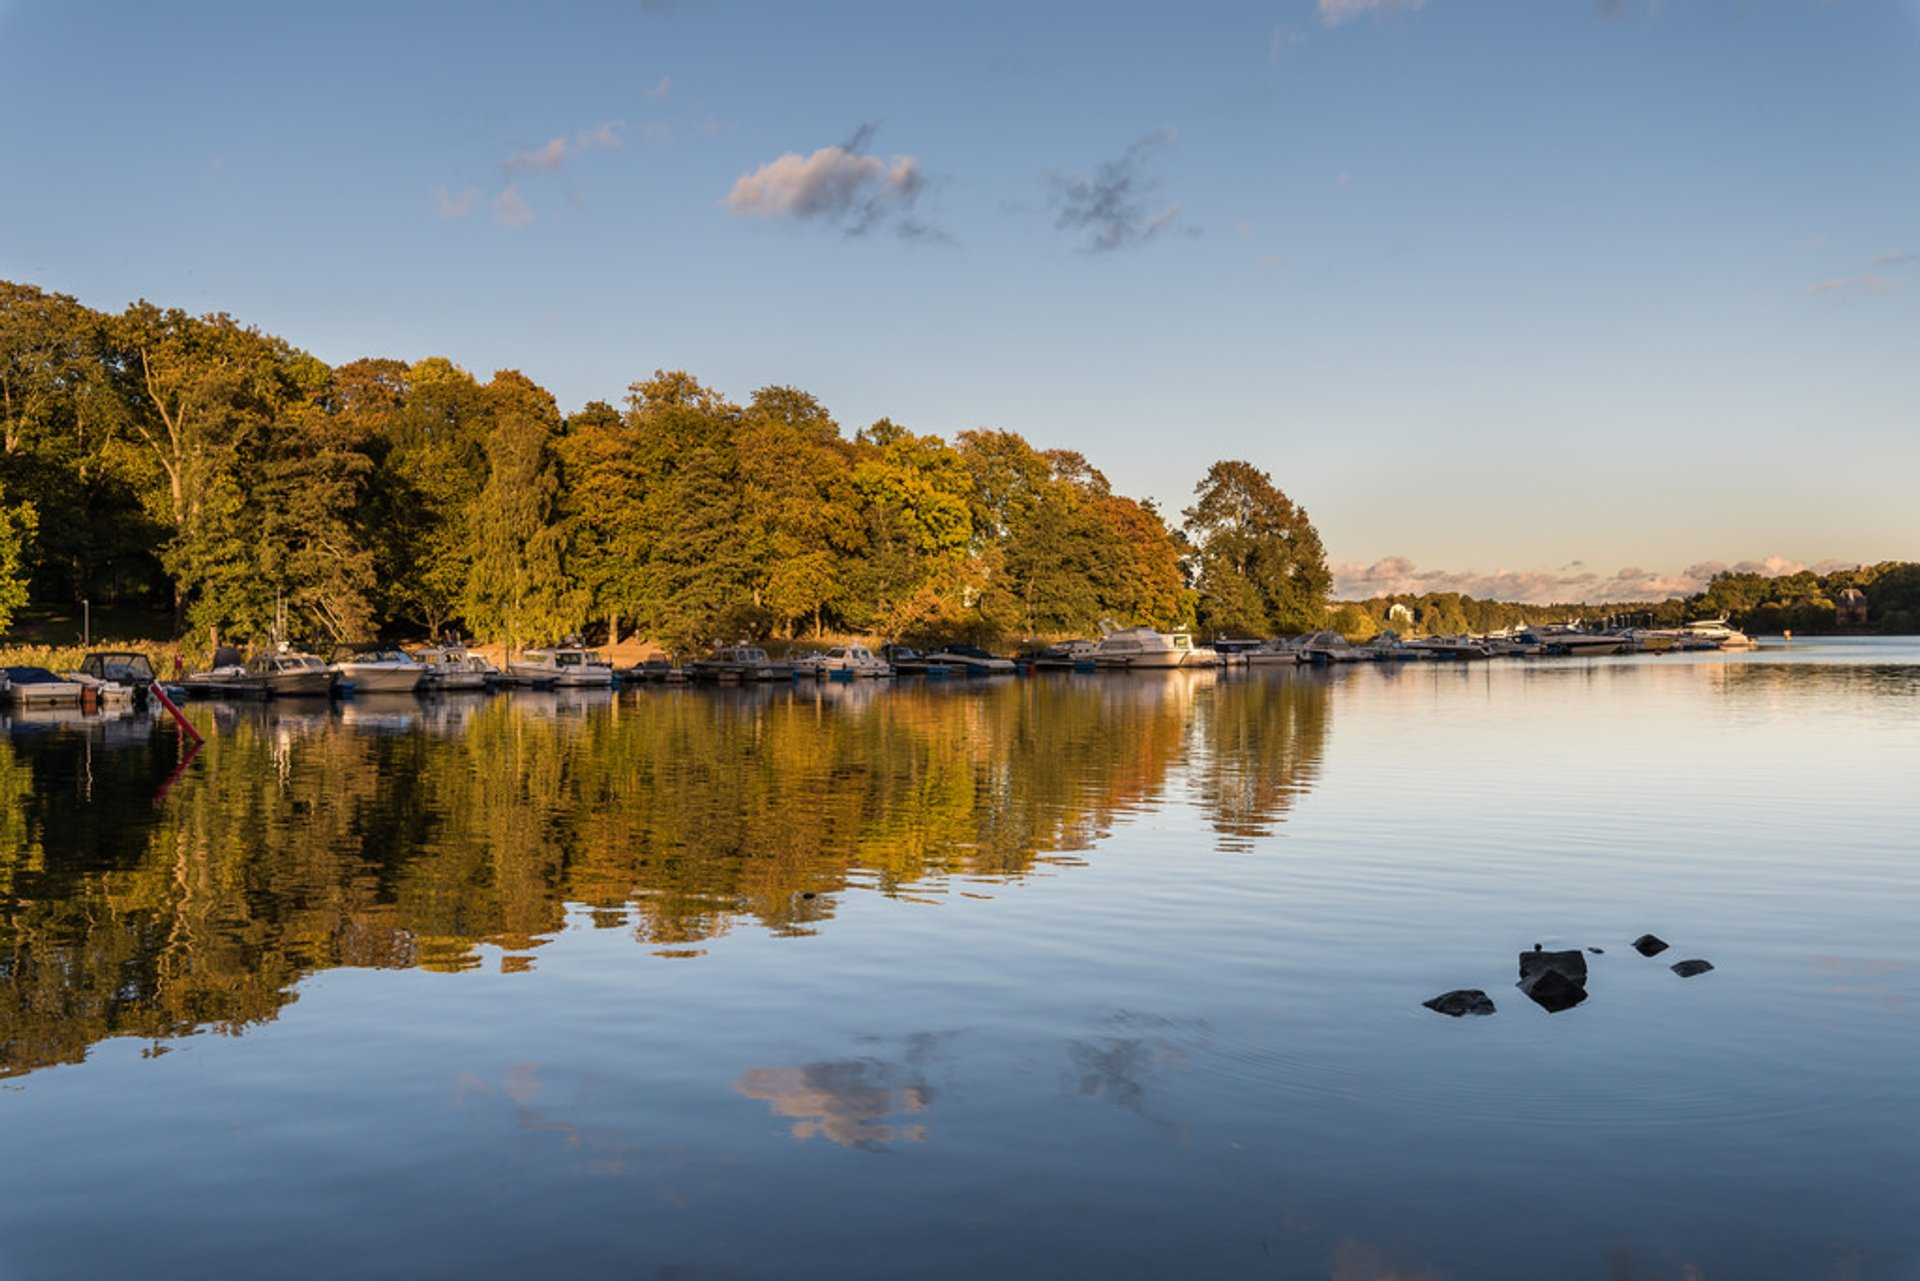 Autumn in Sweden - Best Season 2019